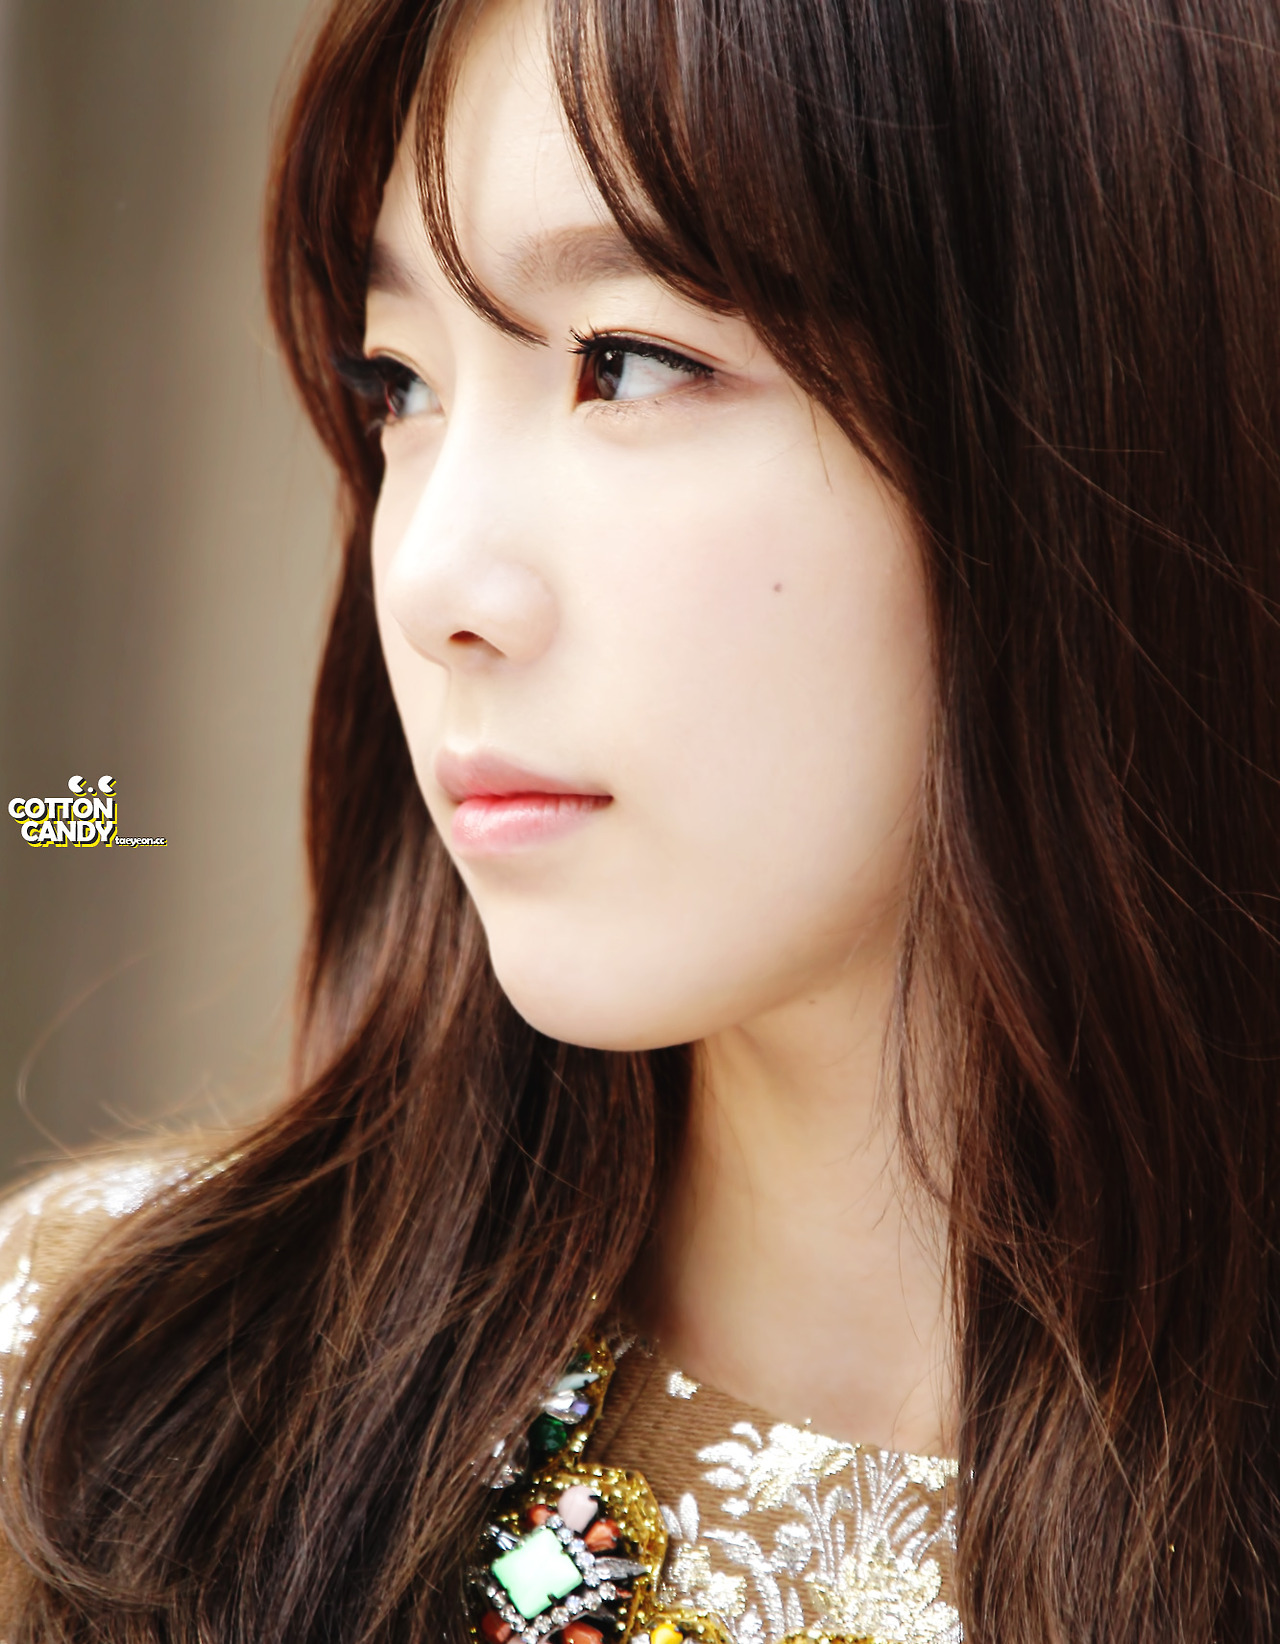 Iphone 6 Wallpaper Nature Hd Taeyeon Snsd Images Lotte Fansign Taeyeon Hd Wallpaper